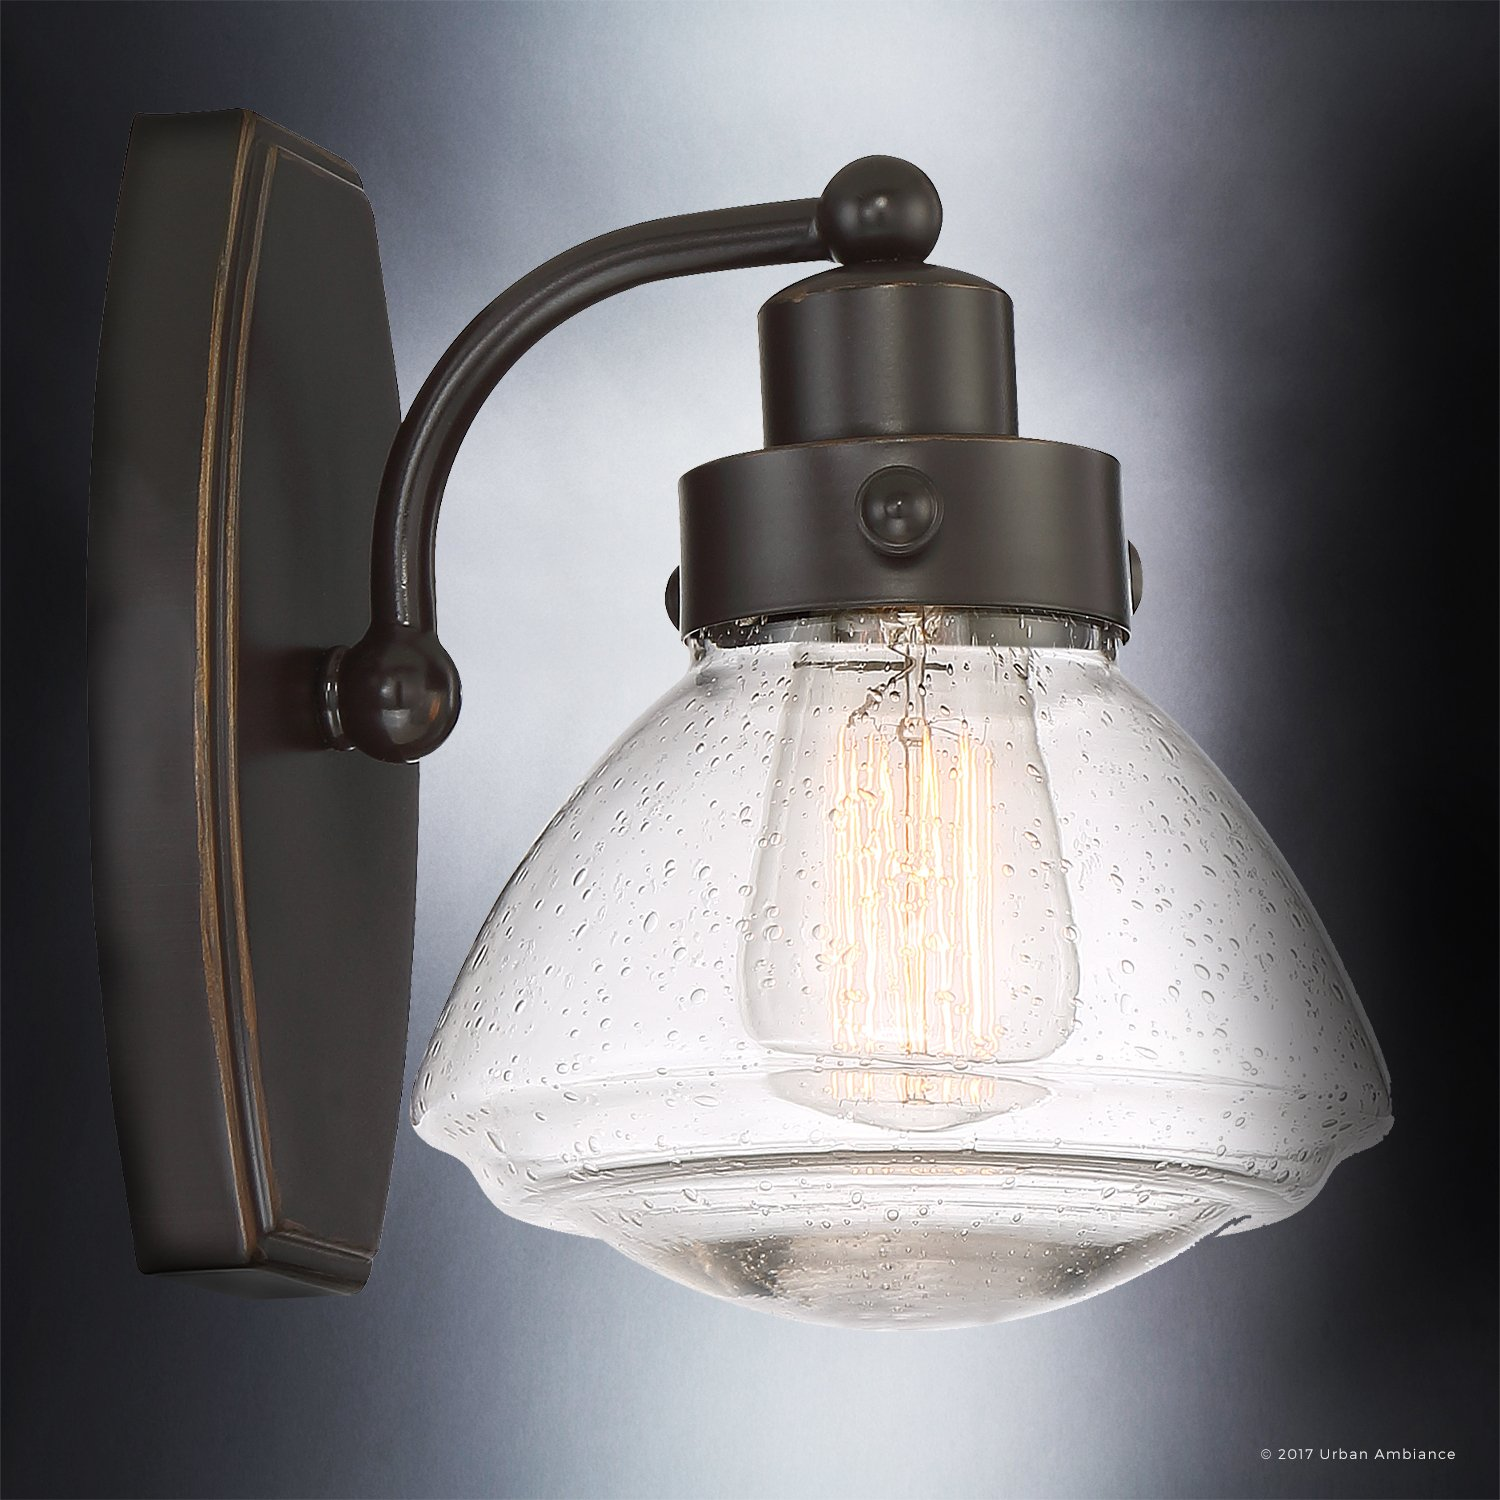 Luxury Transitional Bathroom Vanity Light, Small Size: 8.75'' H x 6.75'' W, with Rustic Style Elements, Oil Rubbed Parisian Bronze Finish and Seeded Schoolhouse Glass, UQL2650 by Urban Ambiance by Urban Ambiance (Image #4)